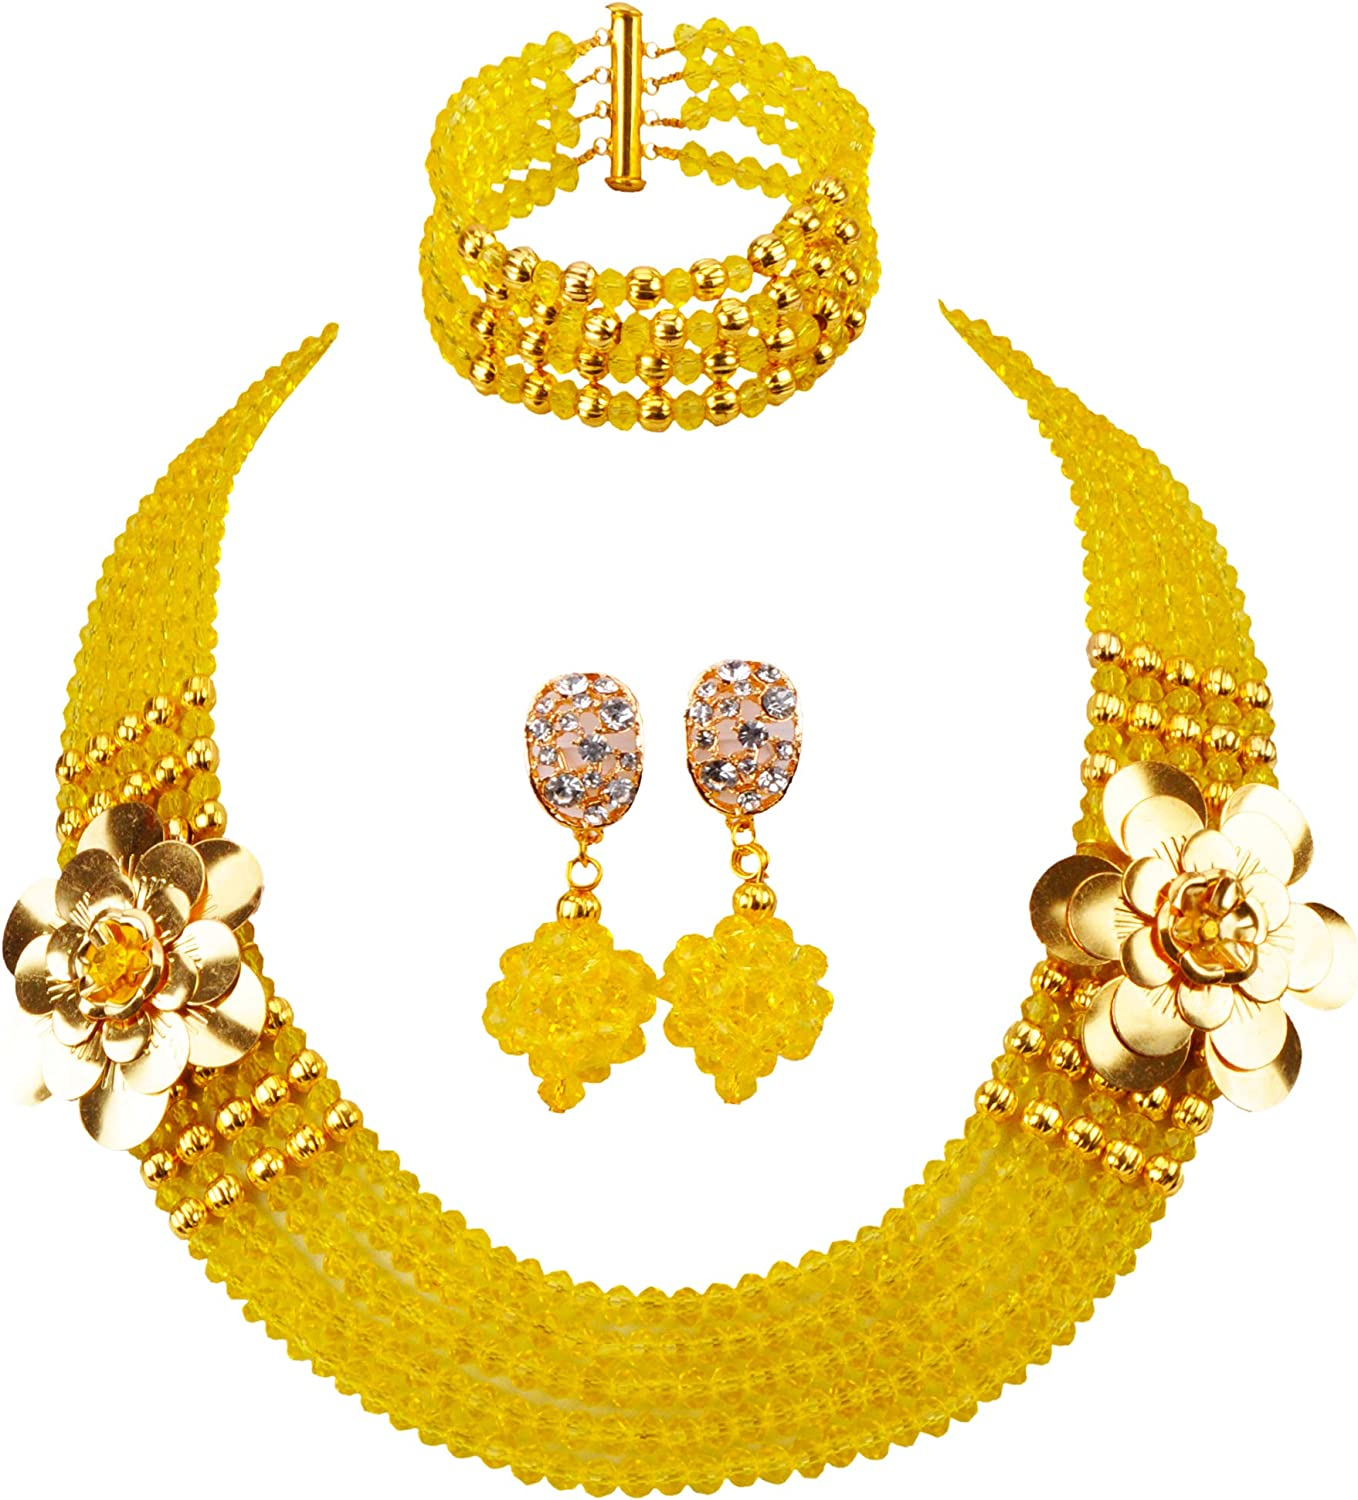 aczuv Costume African Jewelry Set for Womens Nigerian Beads Necklace Bracelet Earrings Sets Wedding Party Gifts